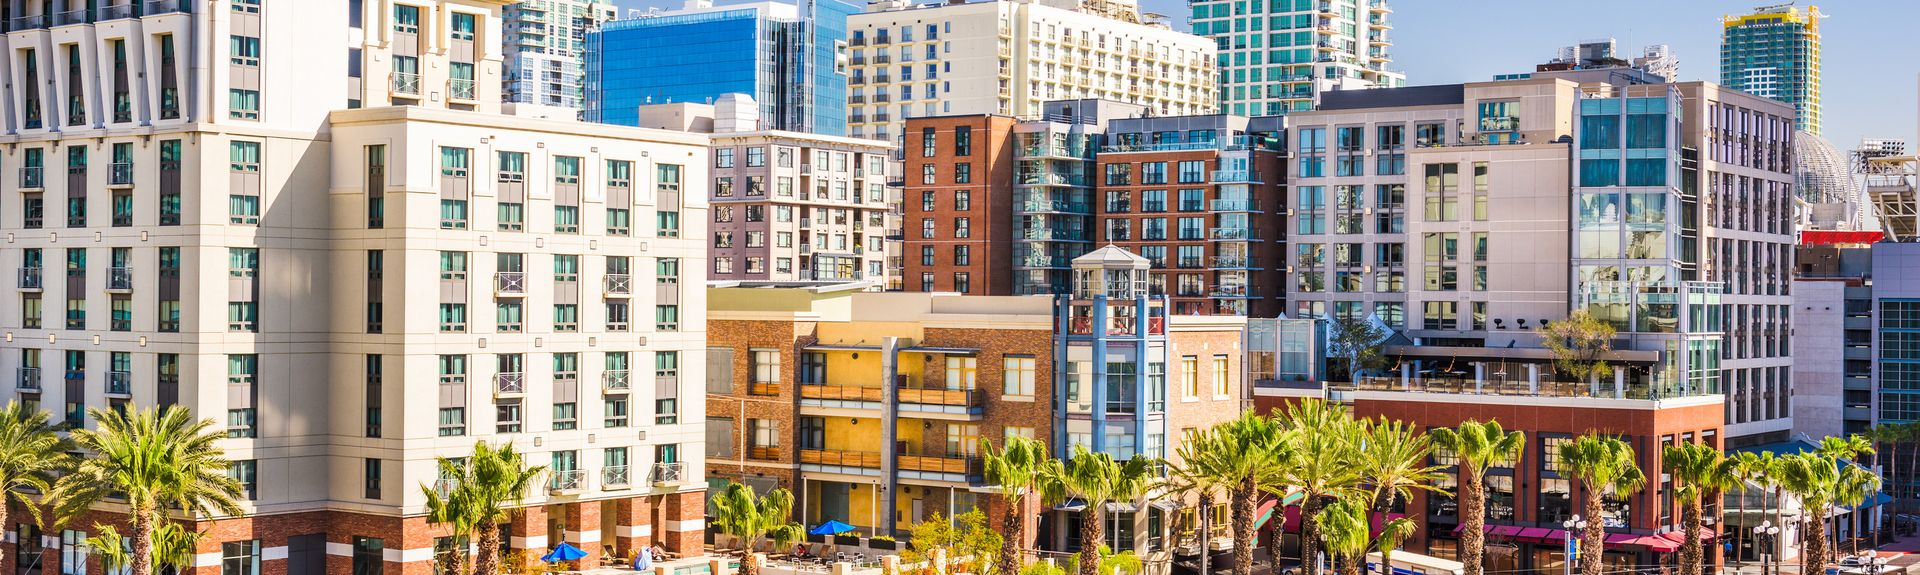 San Diego Ca Vacation Rentals House Rentals More Vrbo